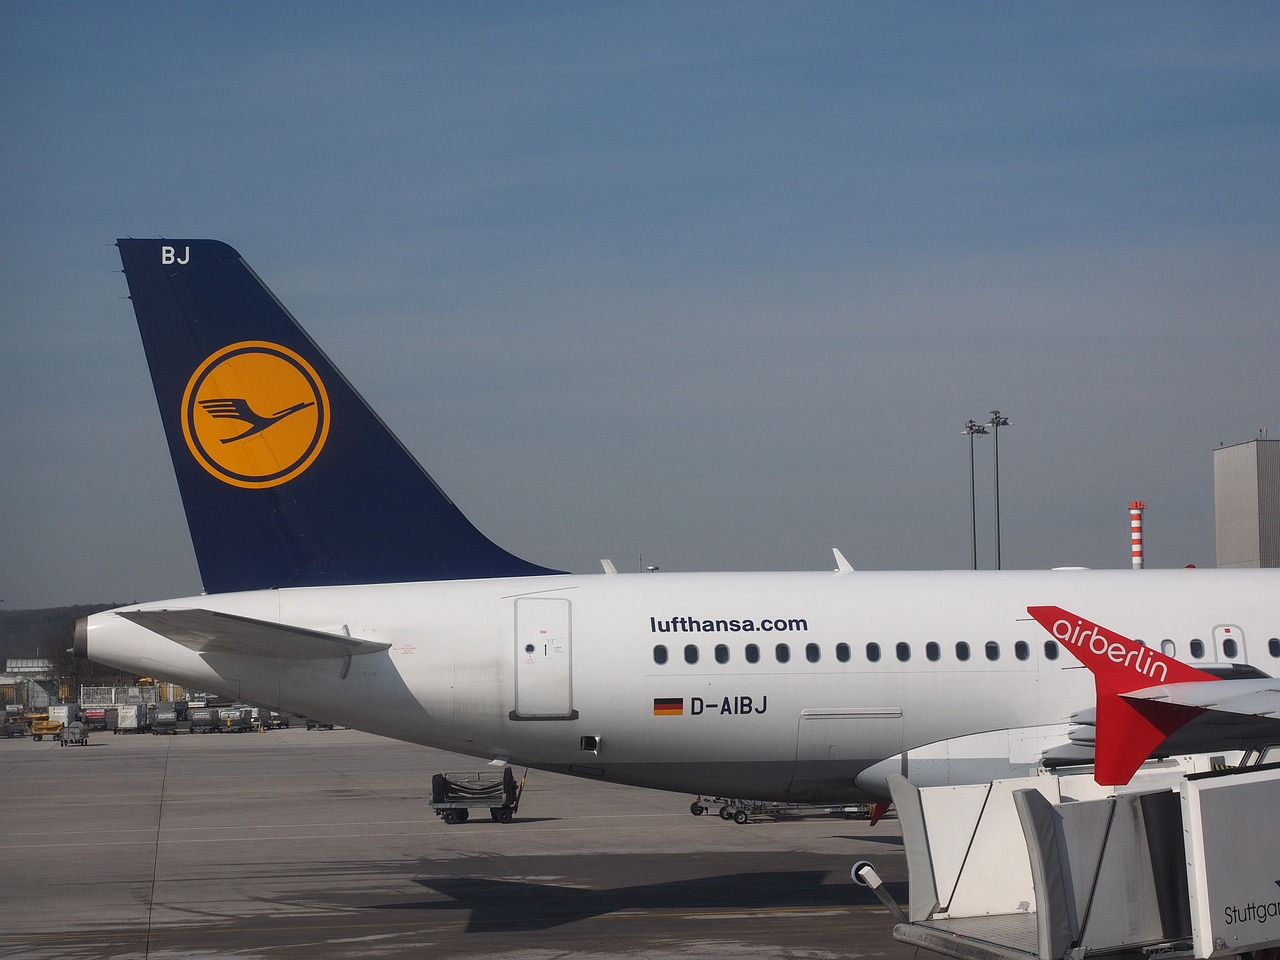 airport aircraft lufthansa free photo